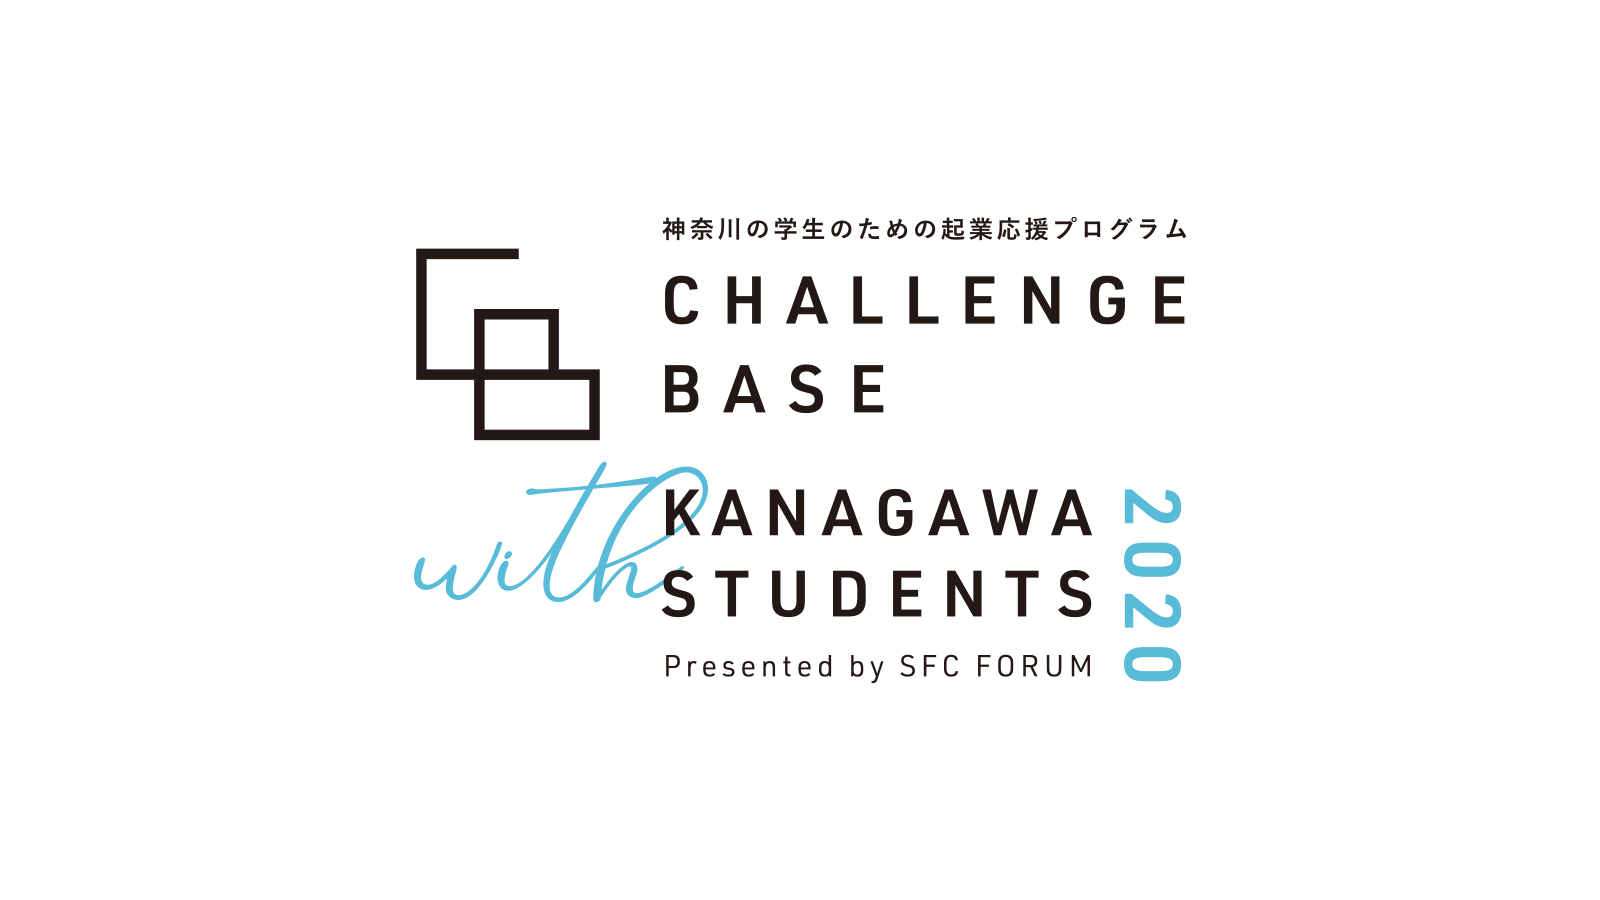 CHALLENGE BASE with KANAGAWA STUDENTS 2020のロゴ